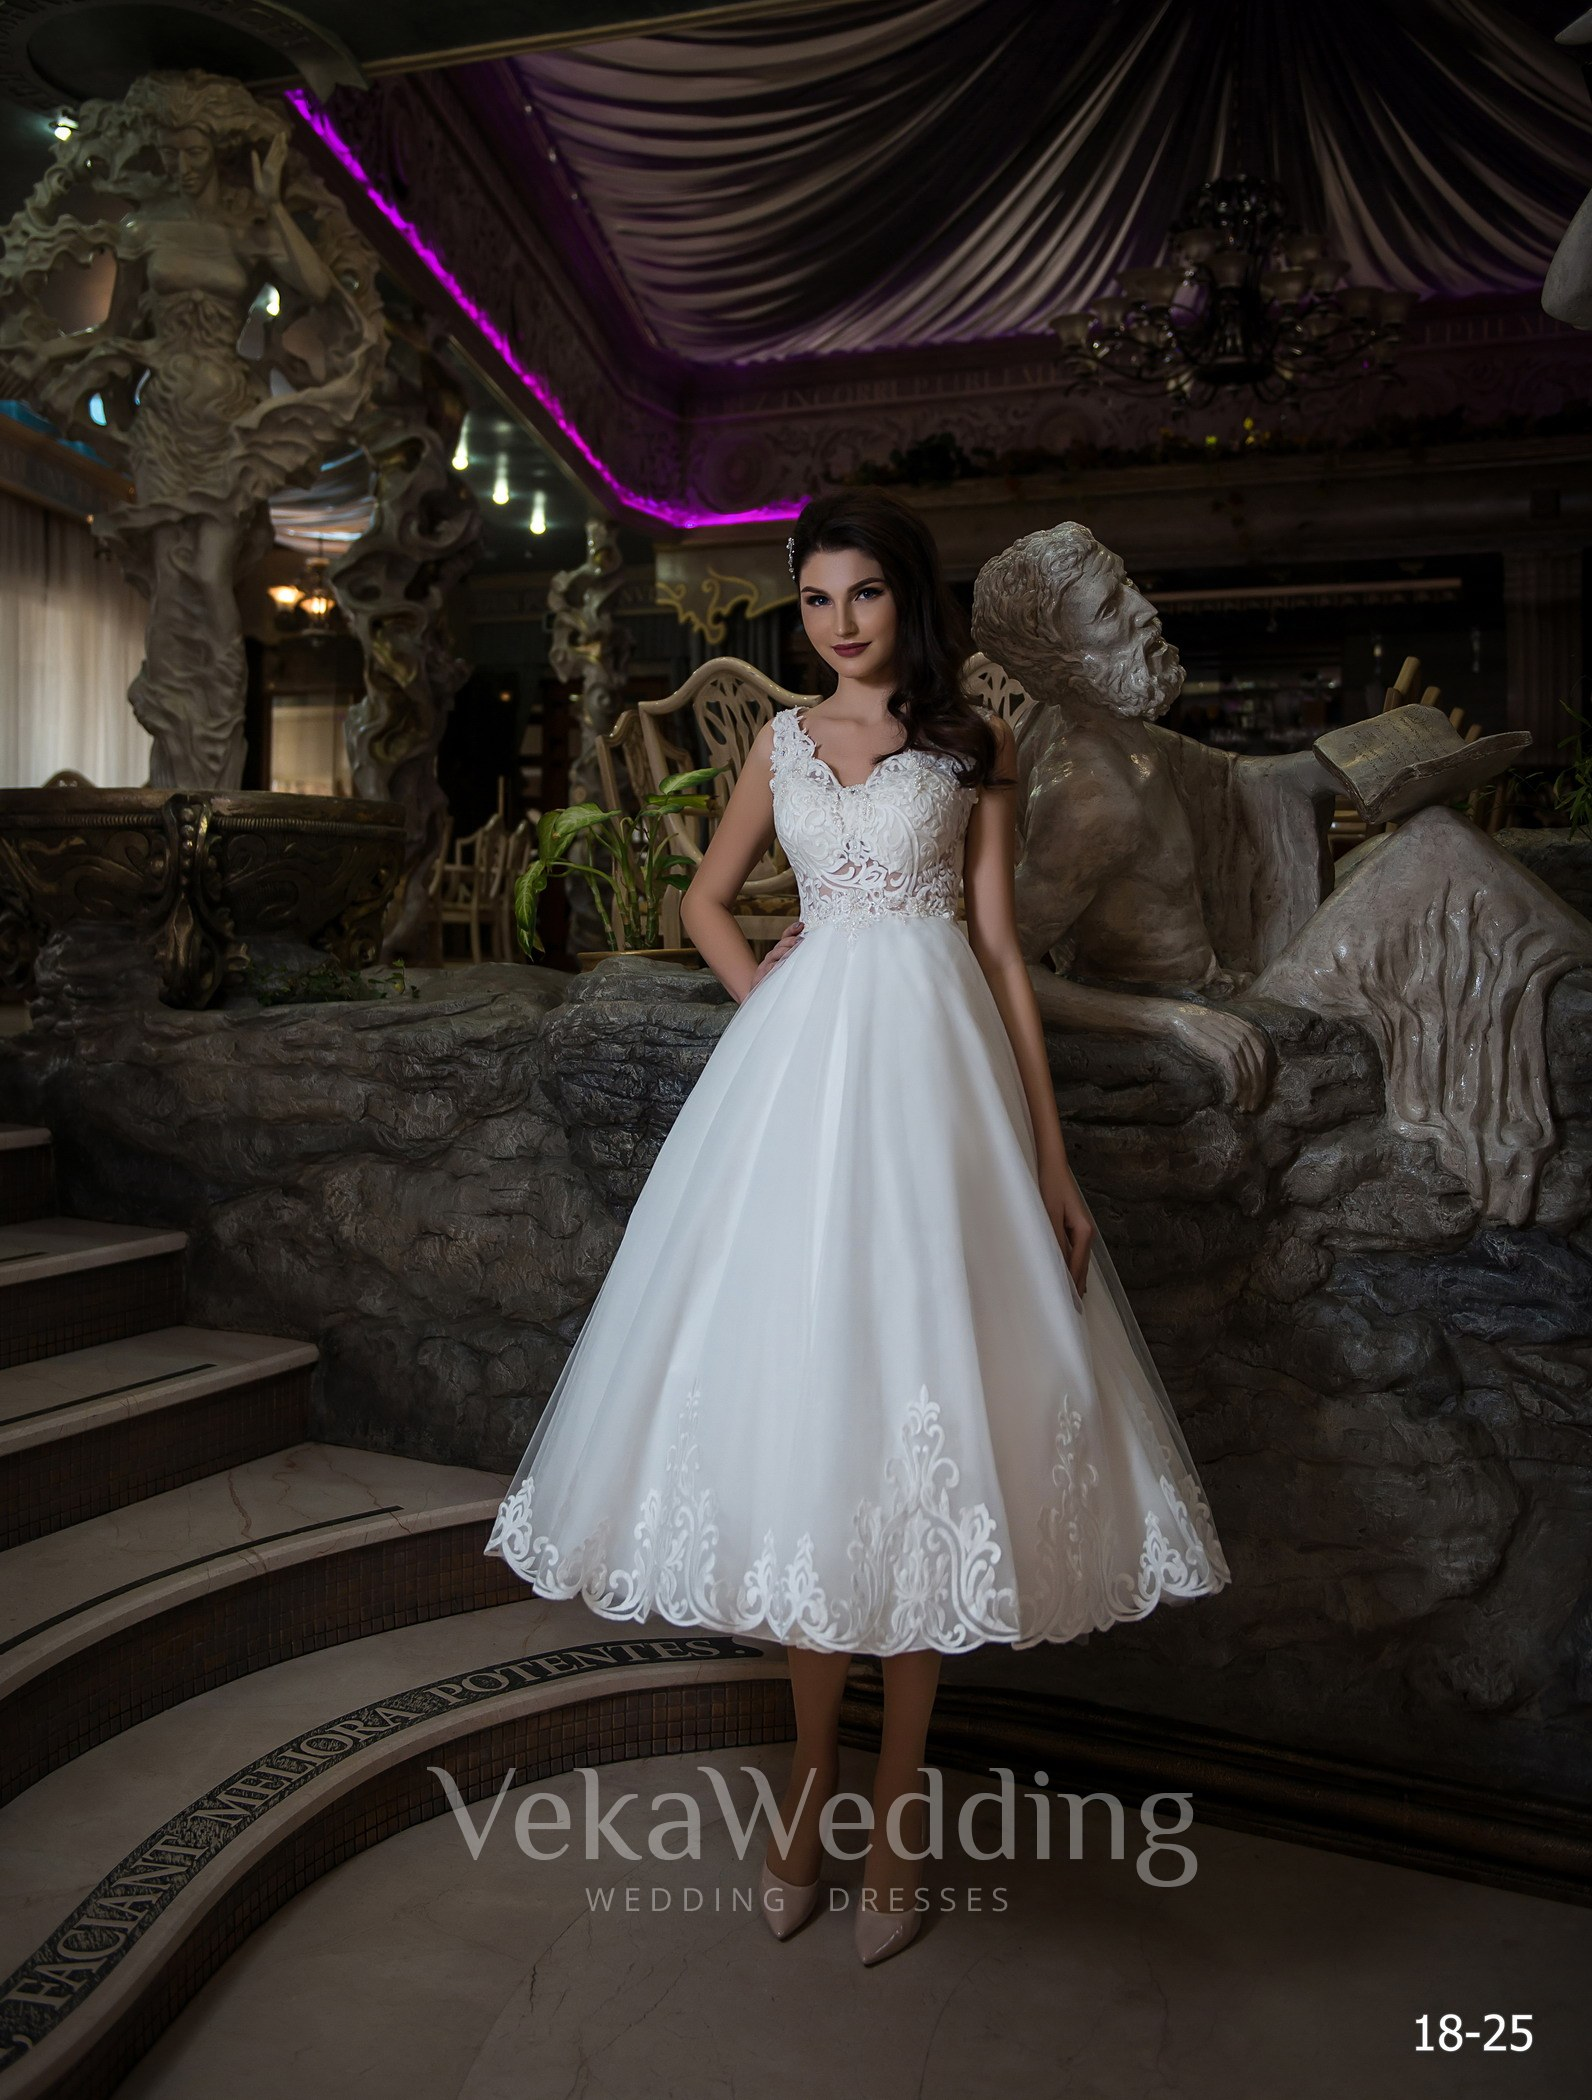 https://vekawedding.com/images/stories/virtuemart/product/18-25-------(1).jpg